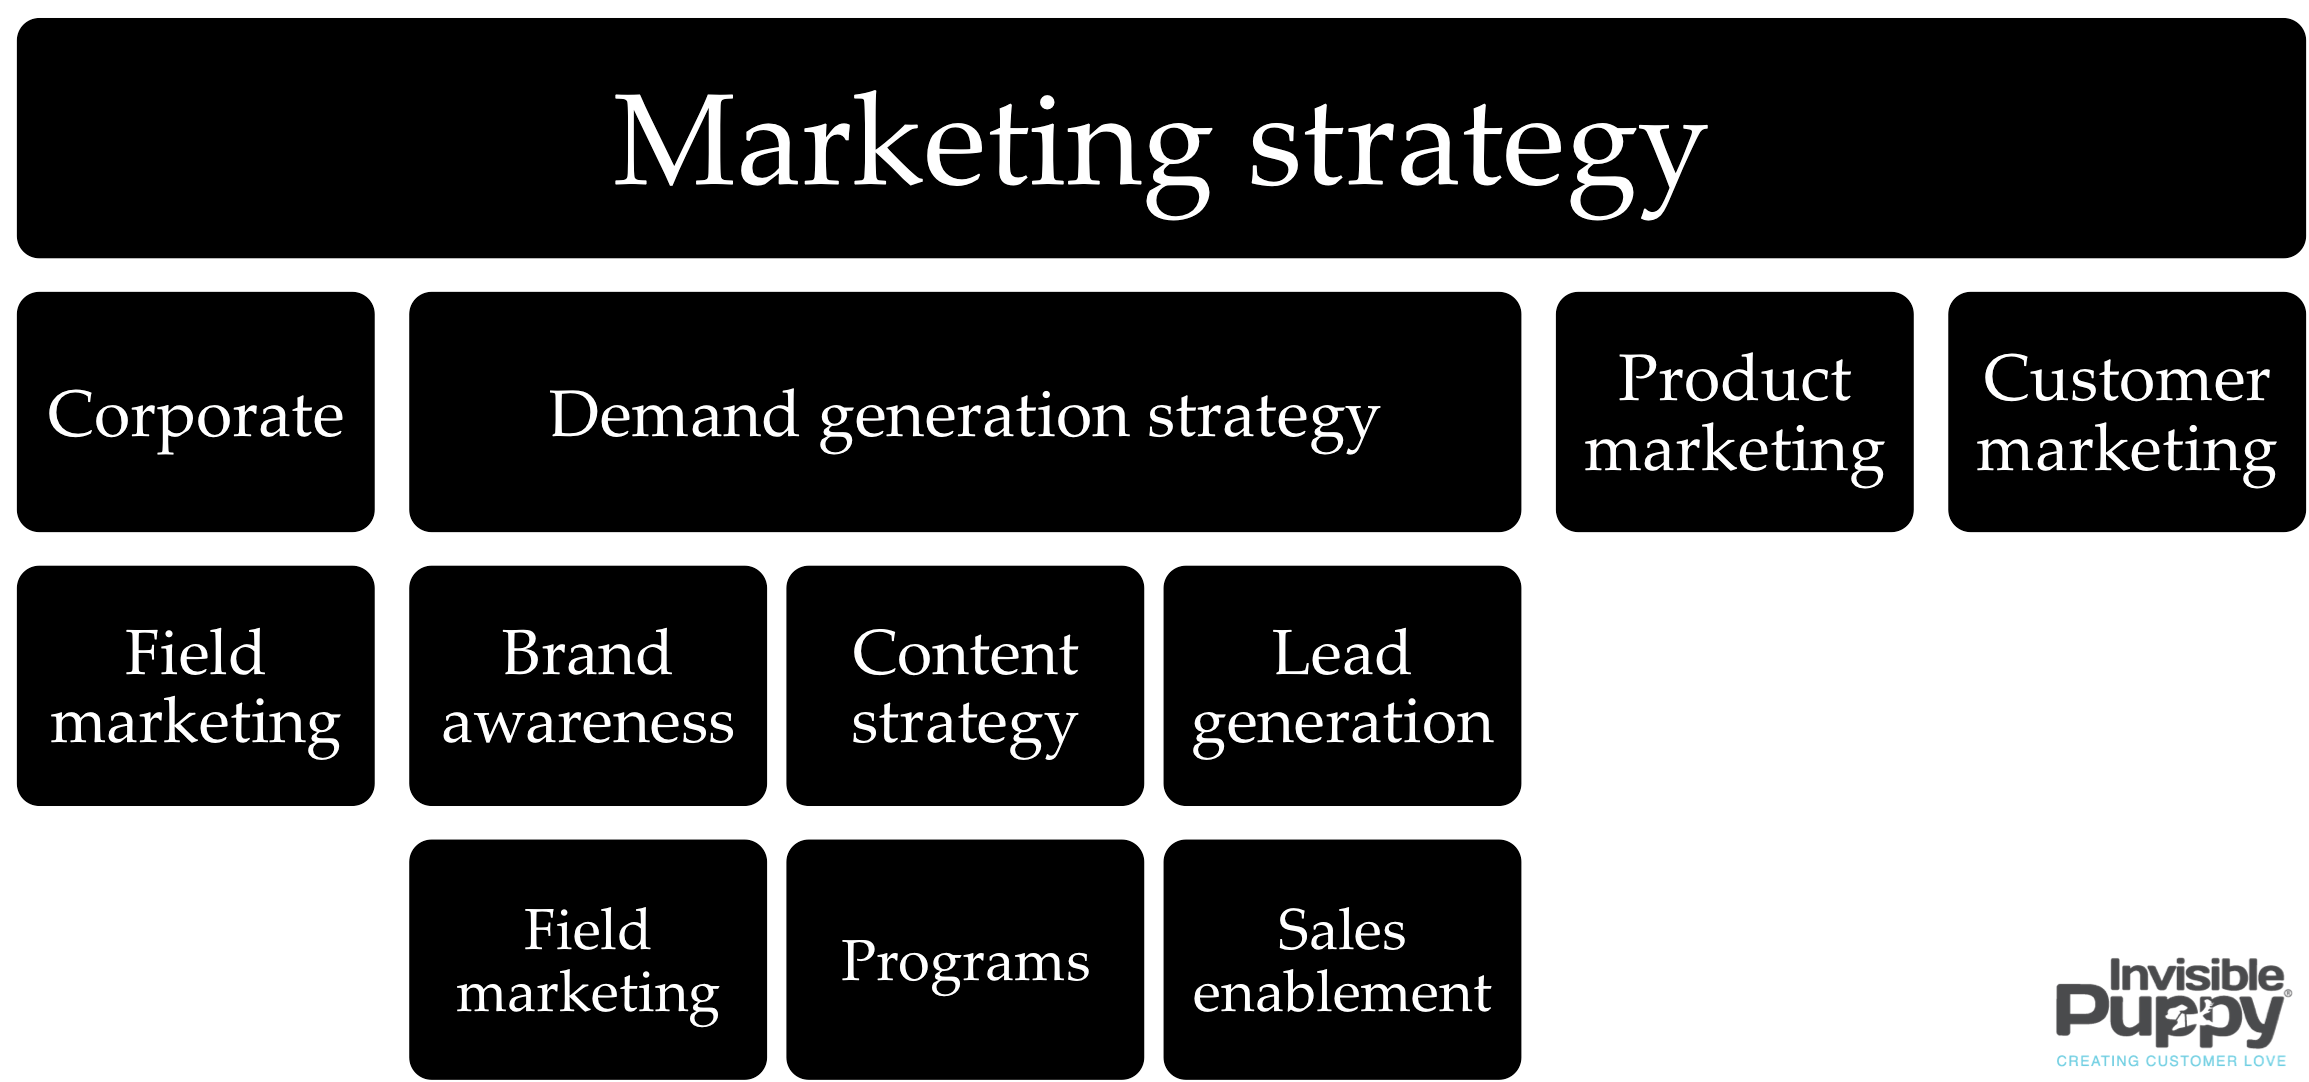 The cmos guide to digital marketing organization structures b2b the cmos guide to digital marketing organization structures b2b marketing experiences thecheapjerseys